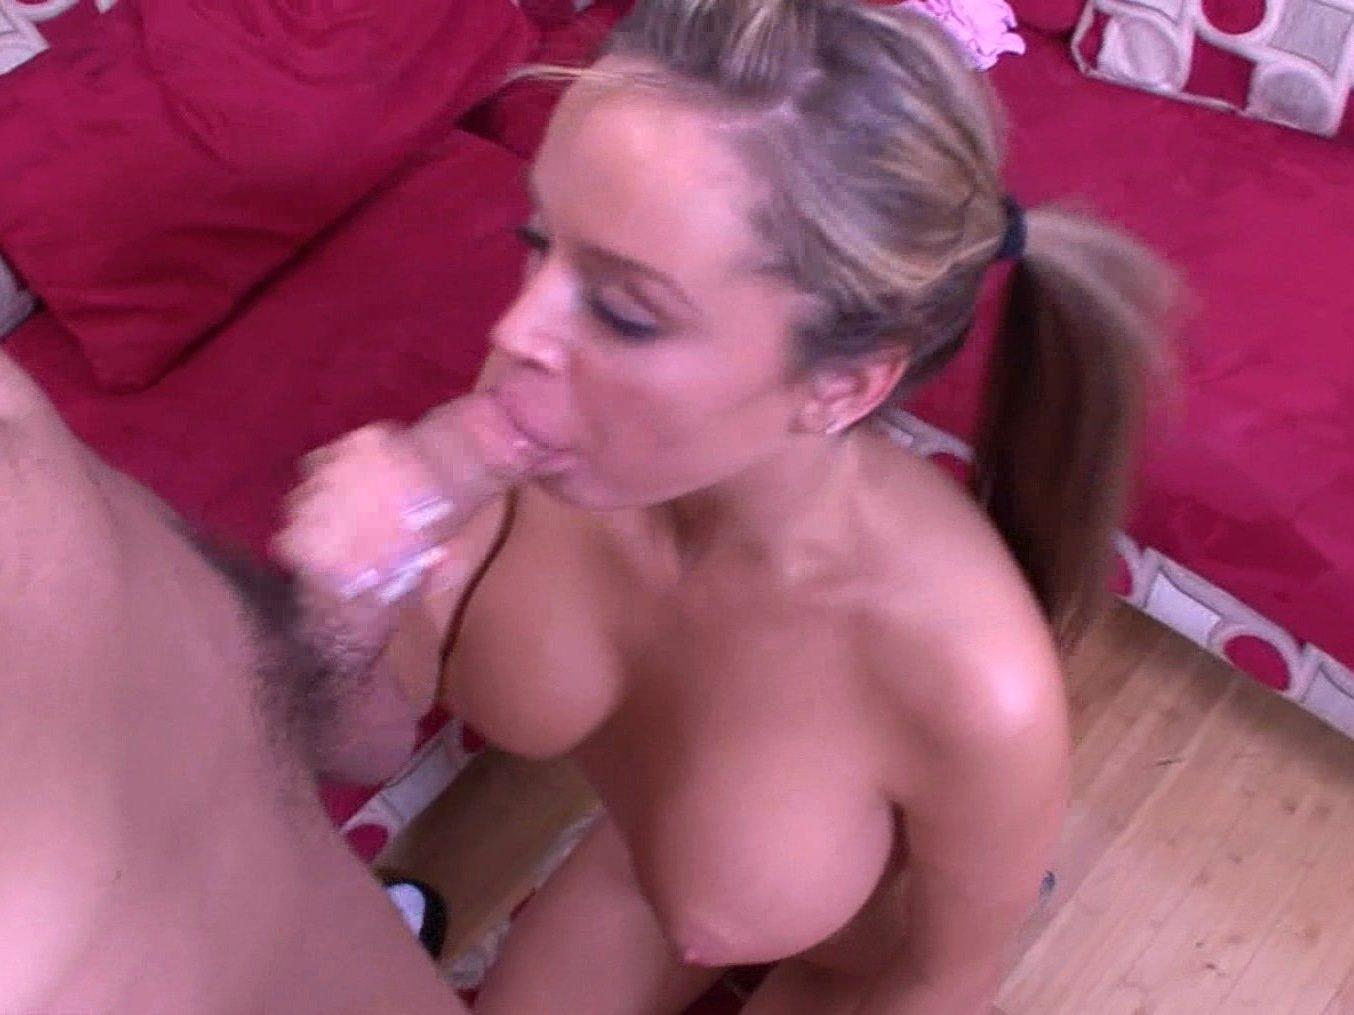 Kiss girl cumshot boy